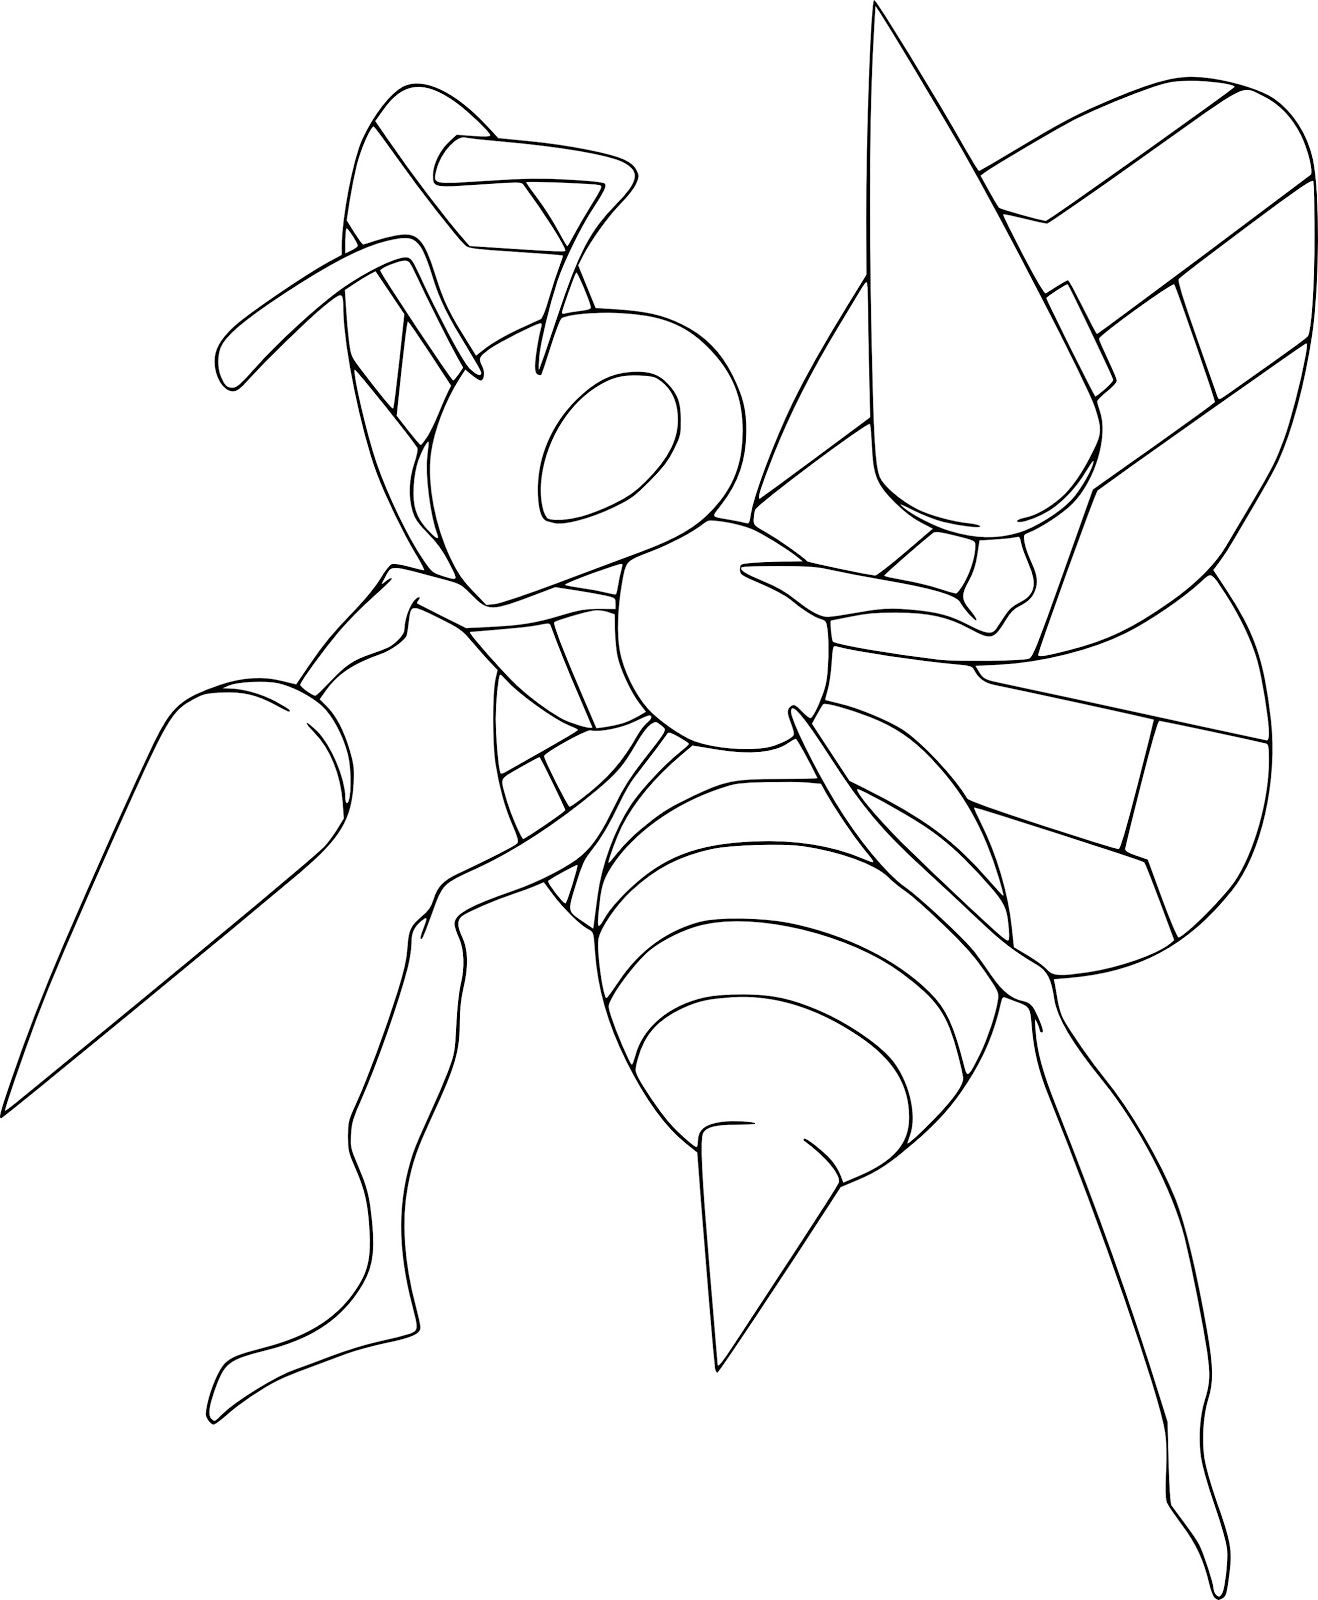 Beedrill Pokemon Coloring Books For Kids Pokemon Coloring Pages Pokemon Coloring Pokemon Coloring Sheets